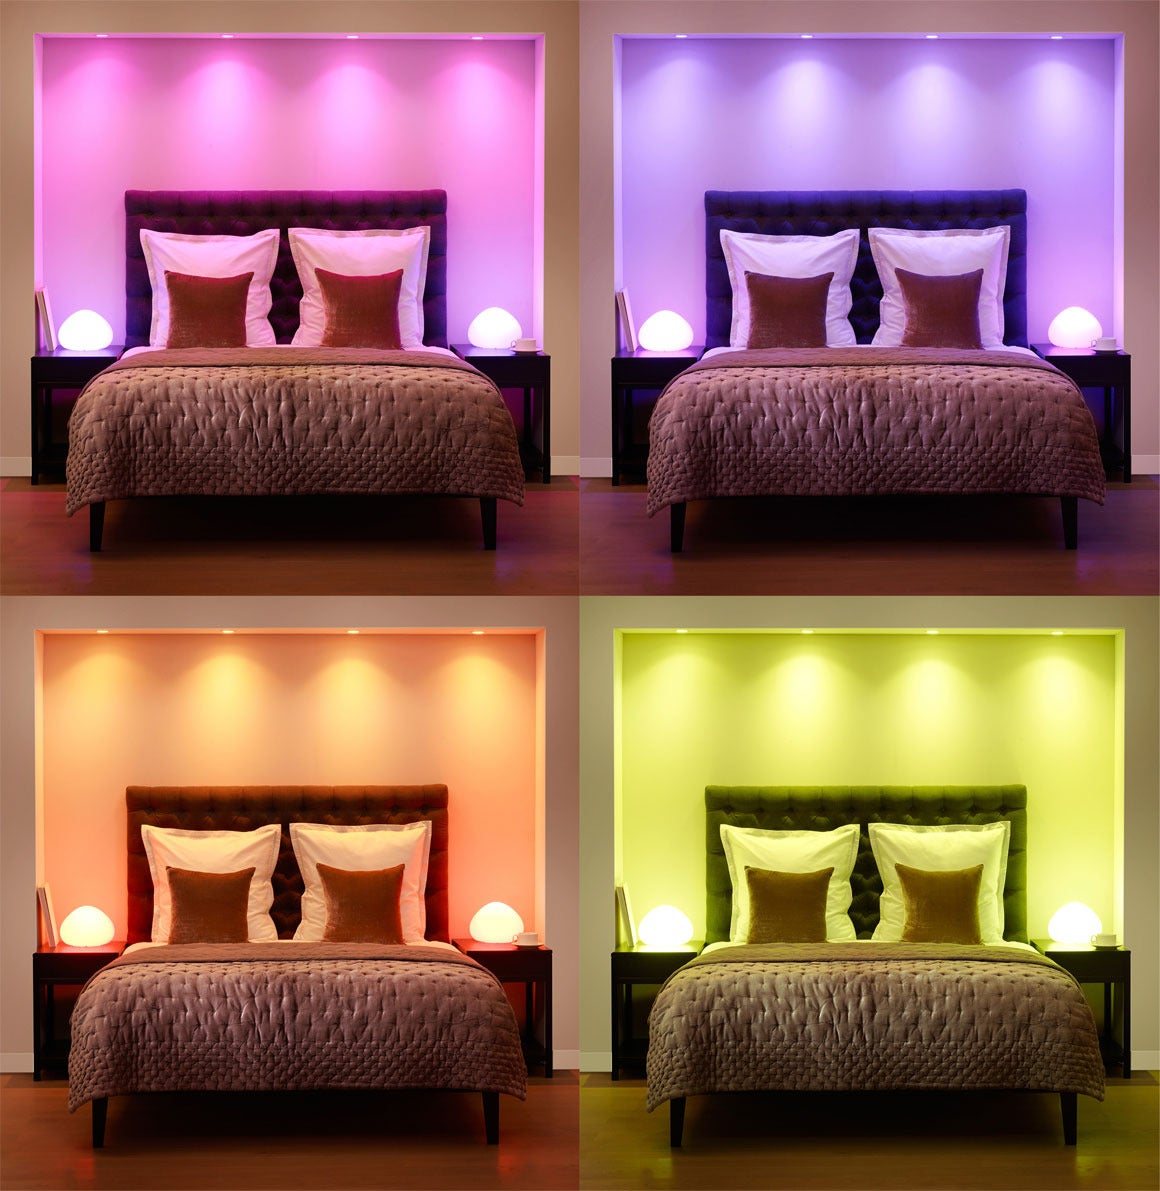 Bedroom Colors Pictures Mood Lighting Bedroom Classic Bedroom Ceiling Design Bedroom Ideas Hgtv: How To Optimize Your Home Lighting Design Based On Color